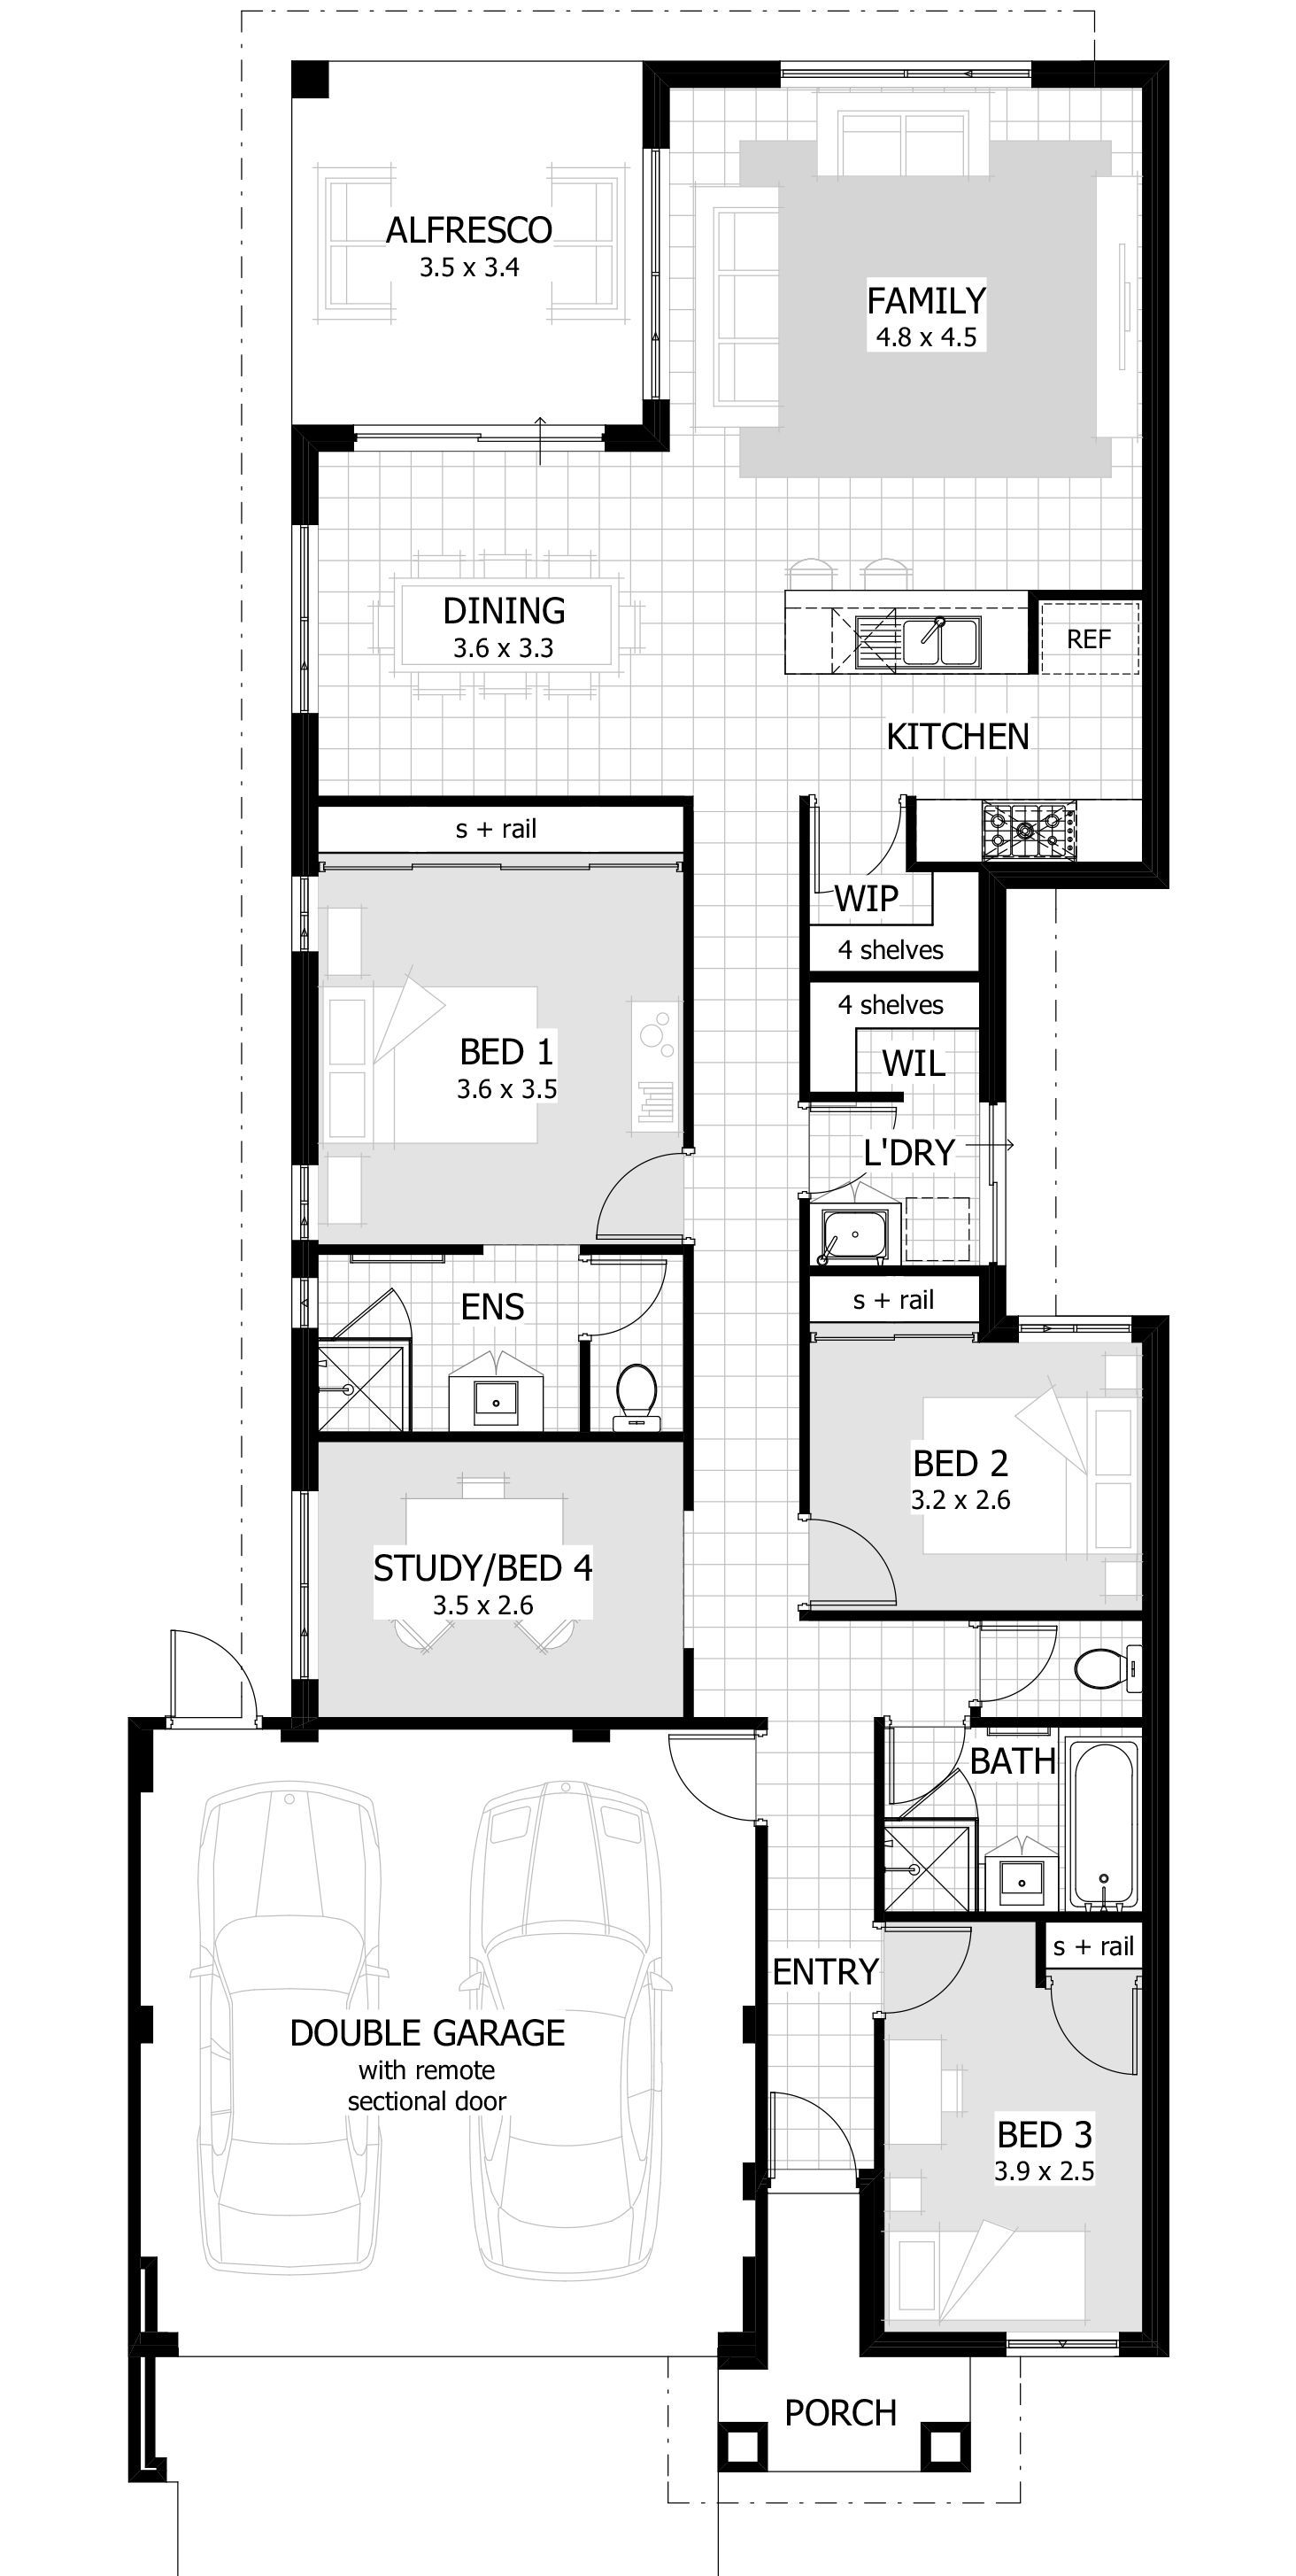 18 Easy Bedroom House Plans Story For You Heating And Plumbing Plans Are Normally Not Inclu Narrow House Plans House Plans Australia Single Storey House Plans